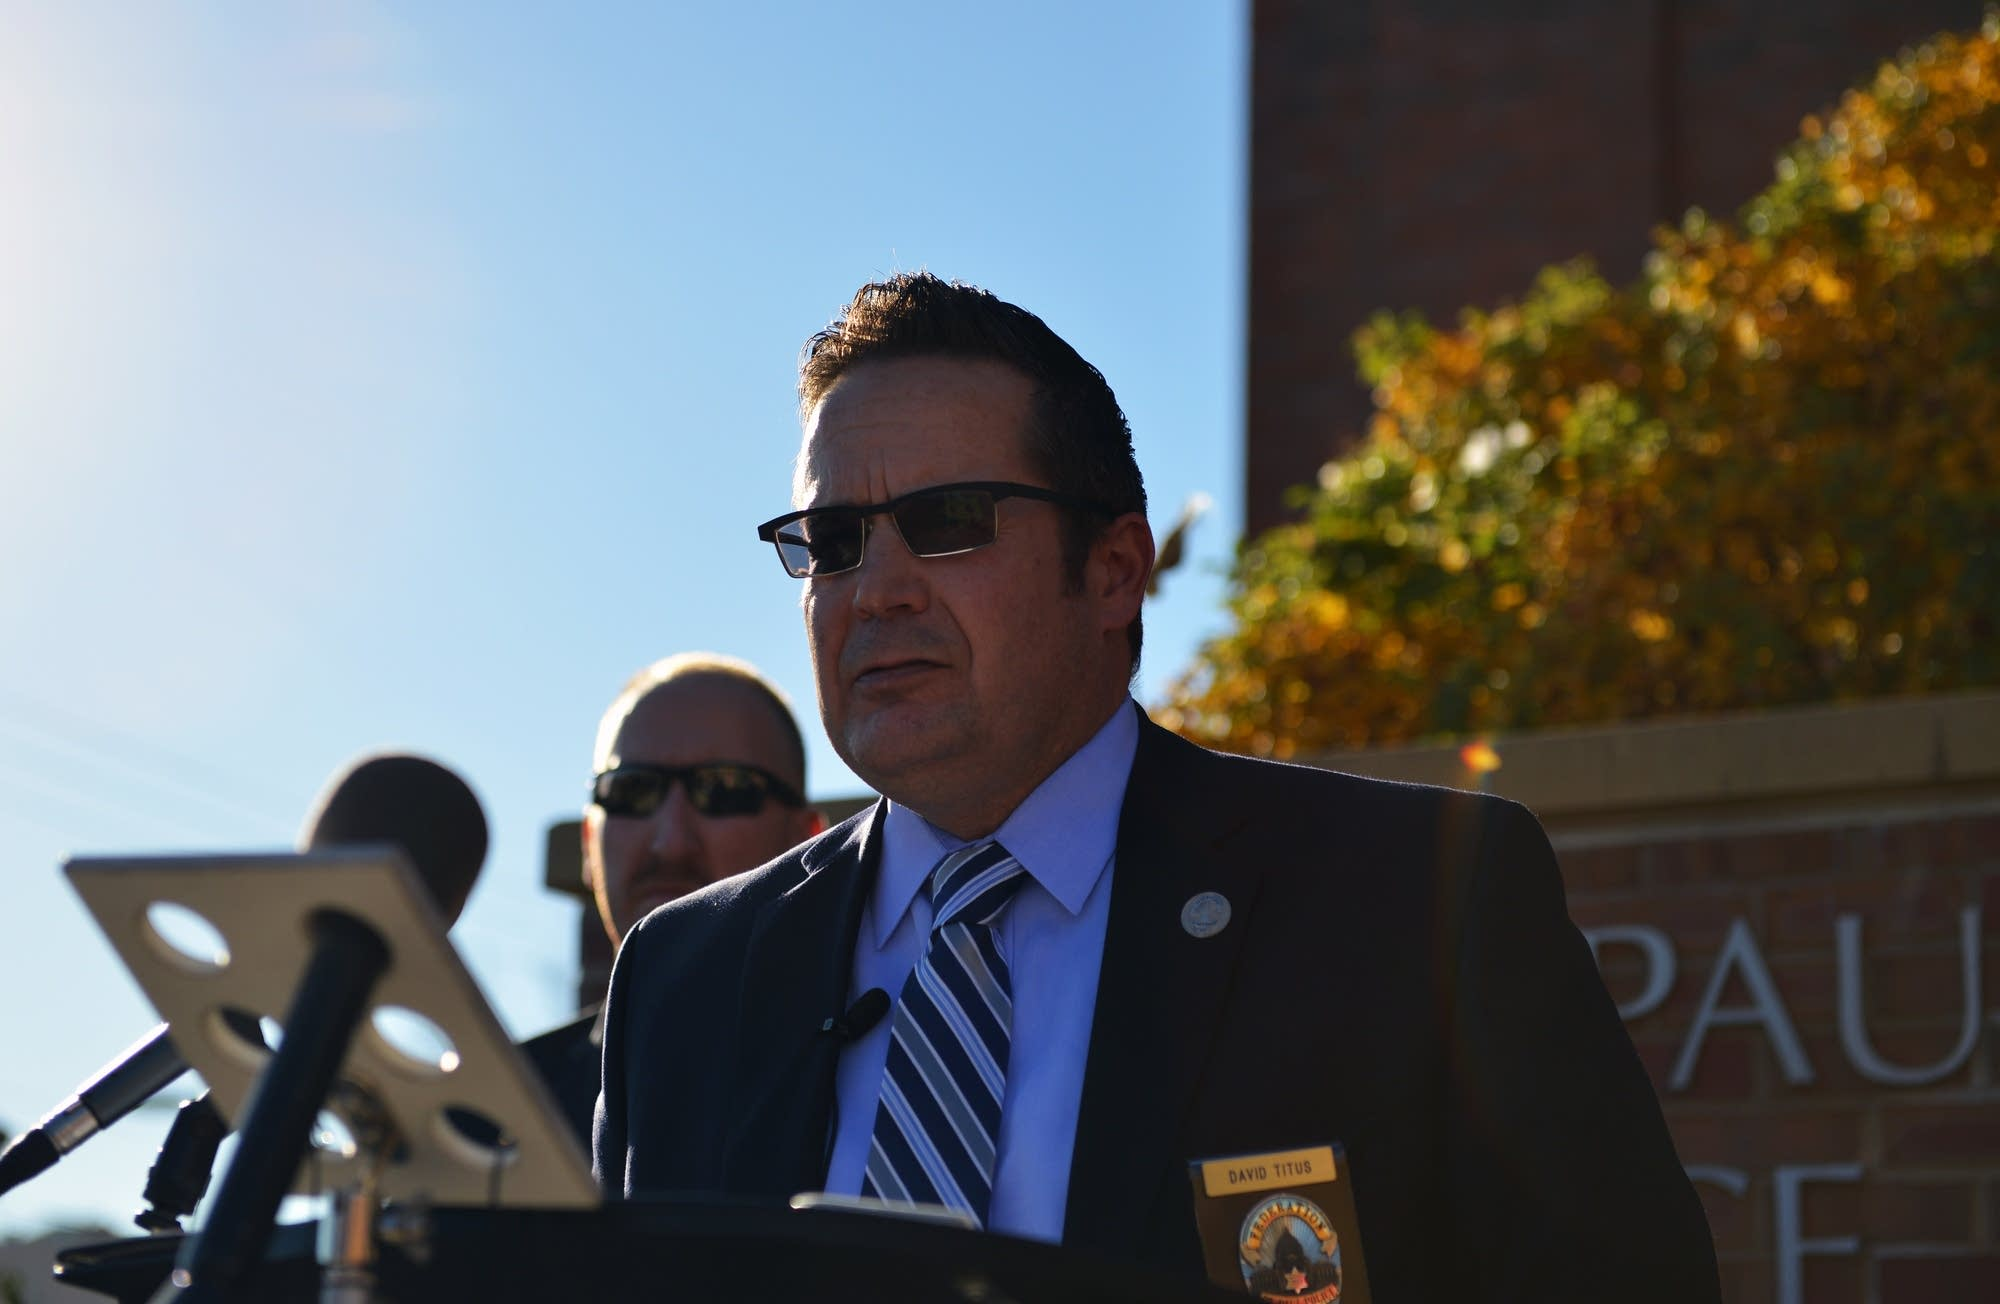 St.Paul Police Federation President David Titus.